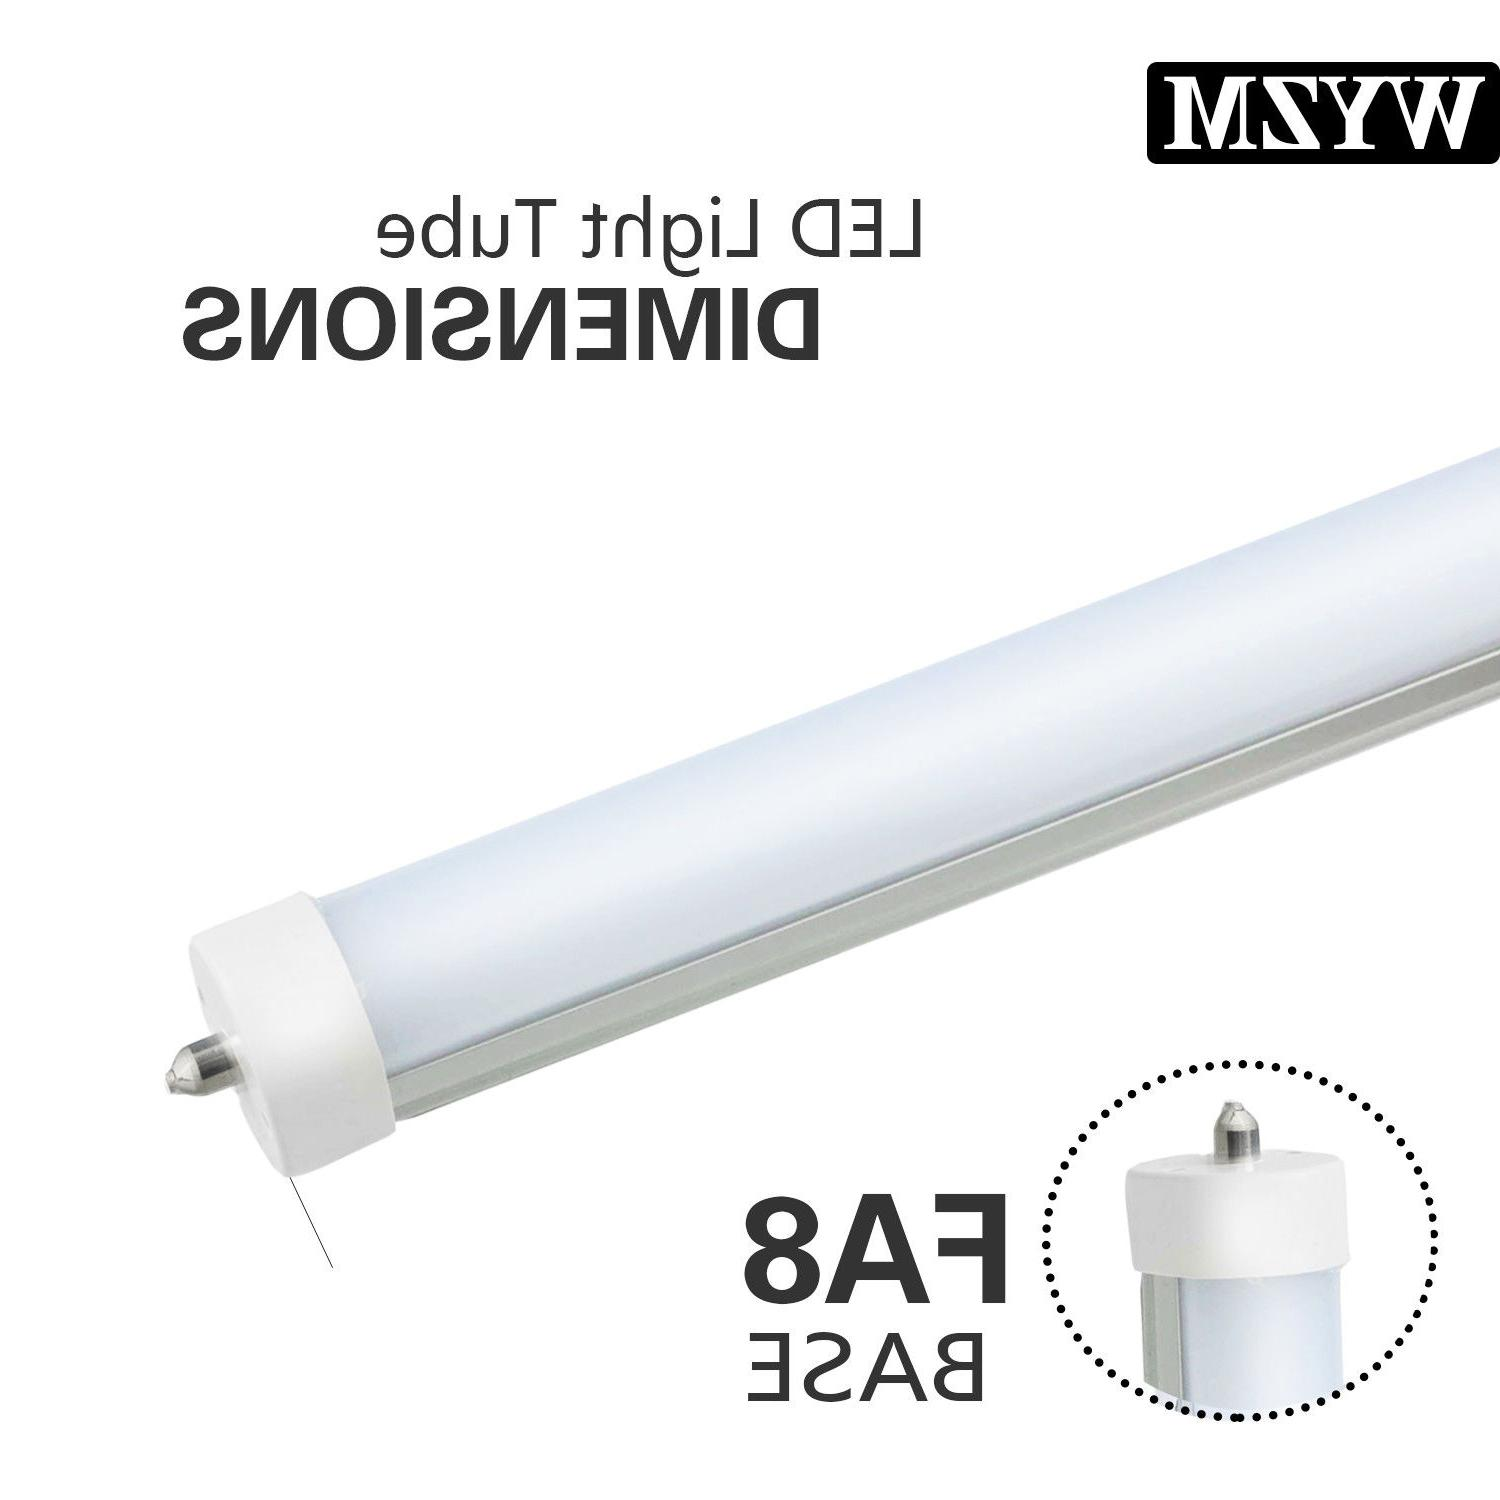 40W 75W Linear F96T12 Tube Light Replacement